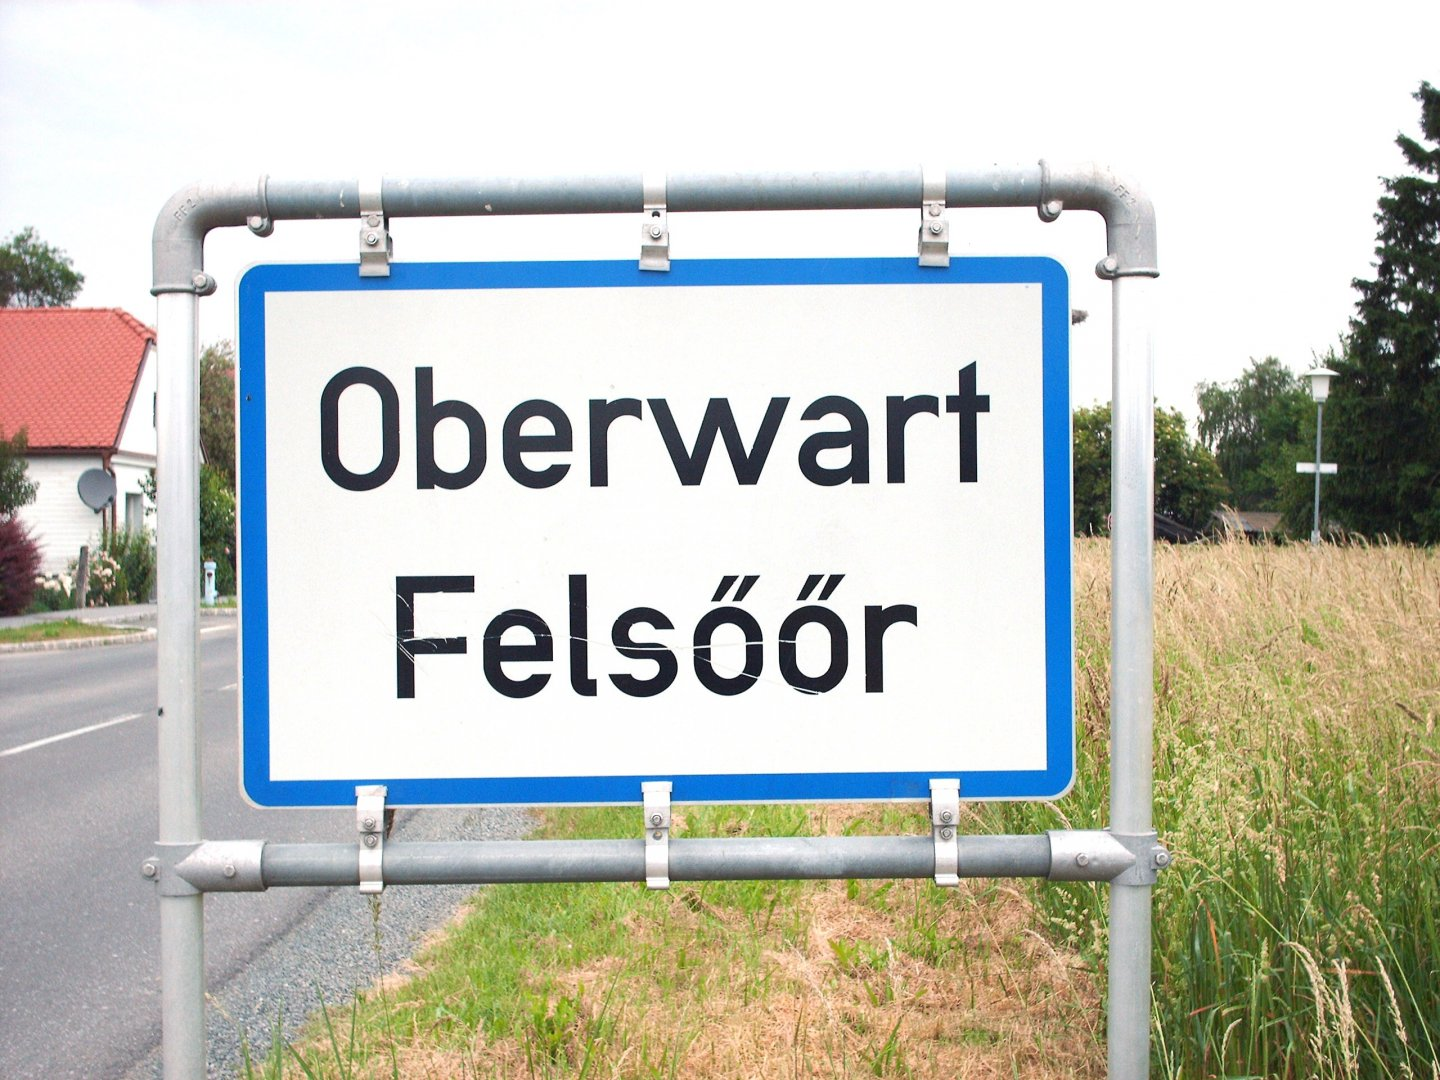 Bilingual Signboards are standard in the European Union